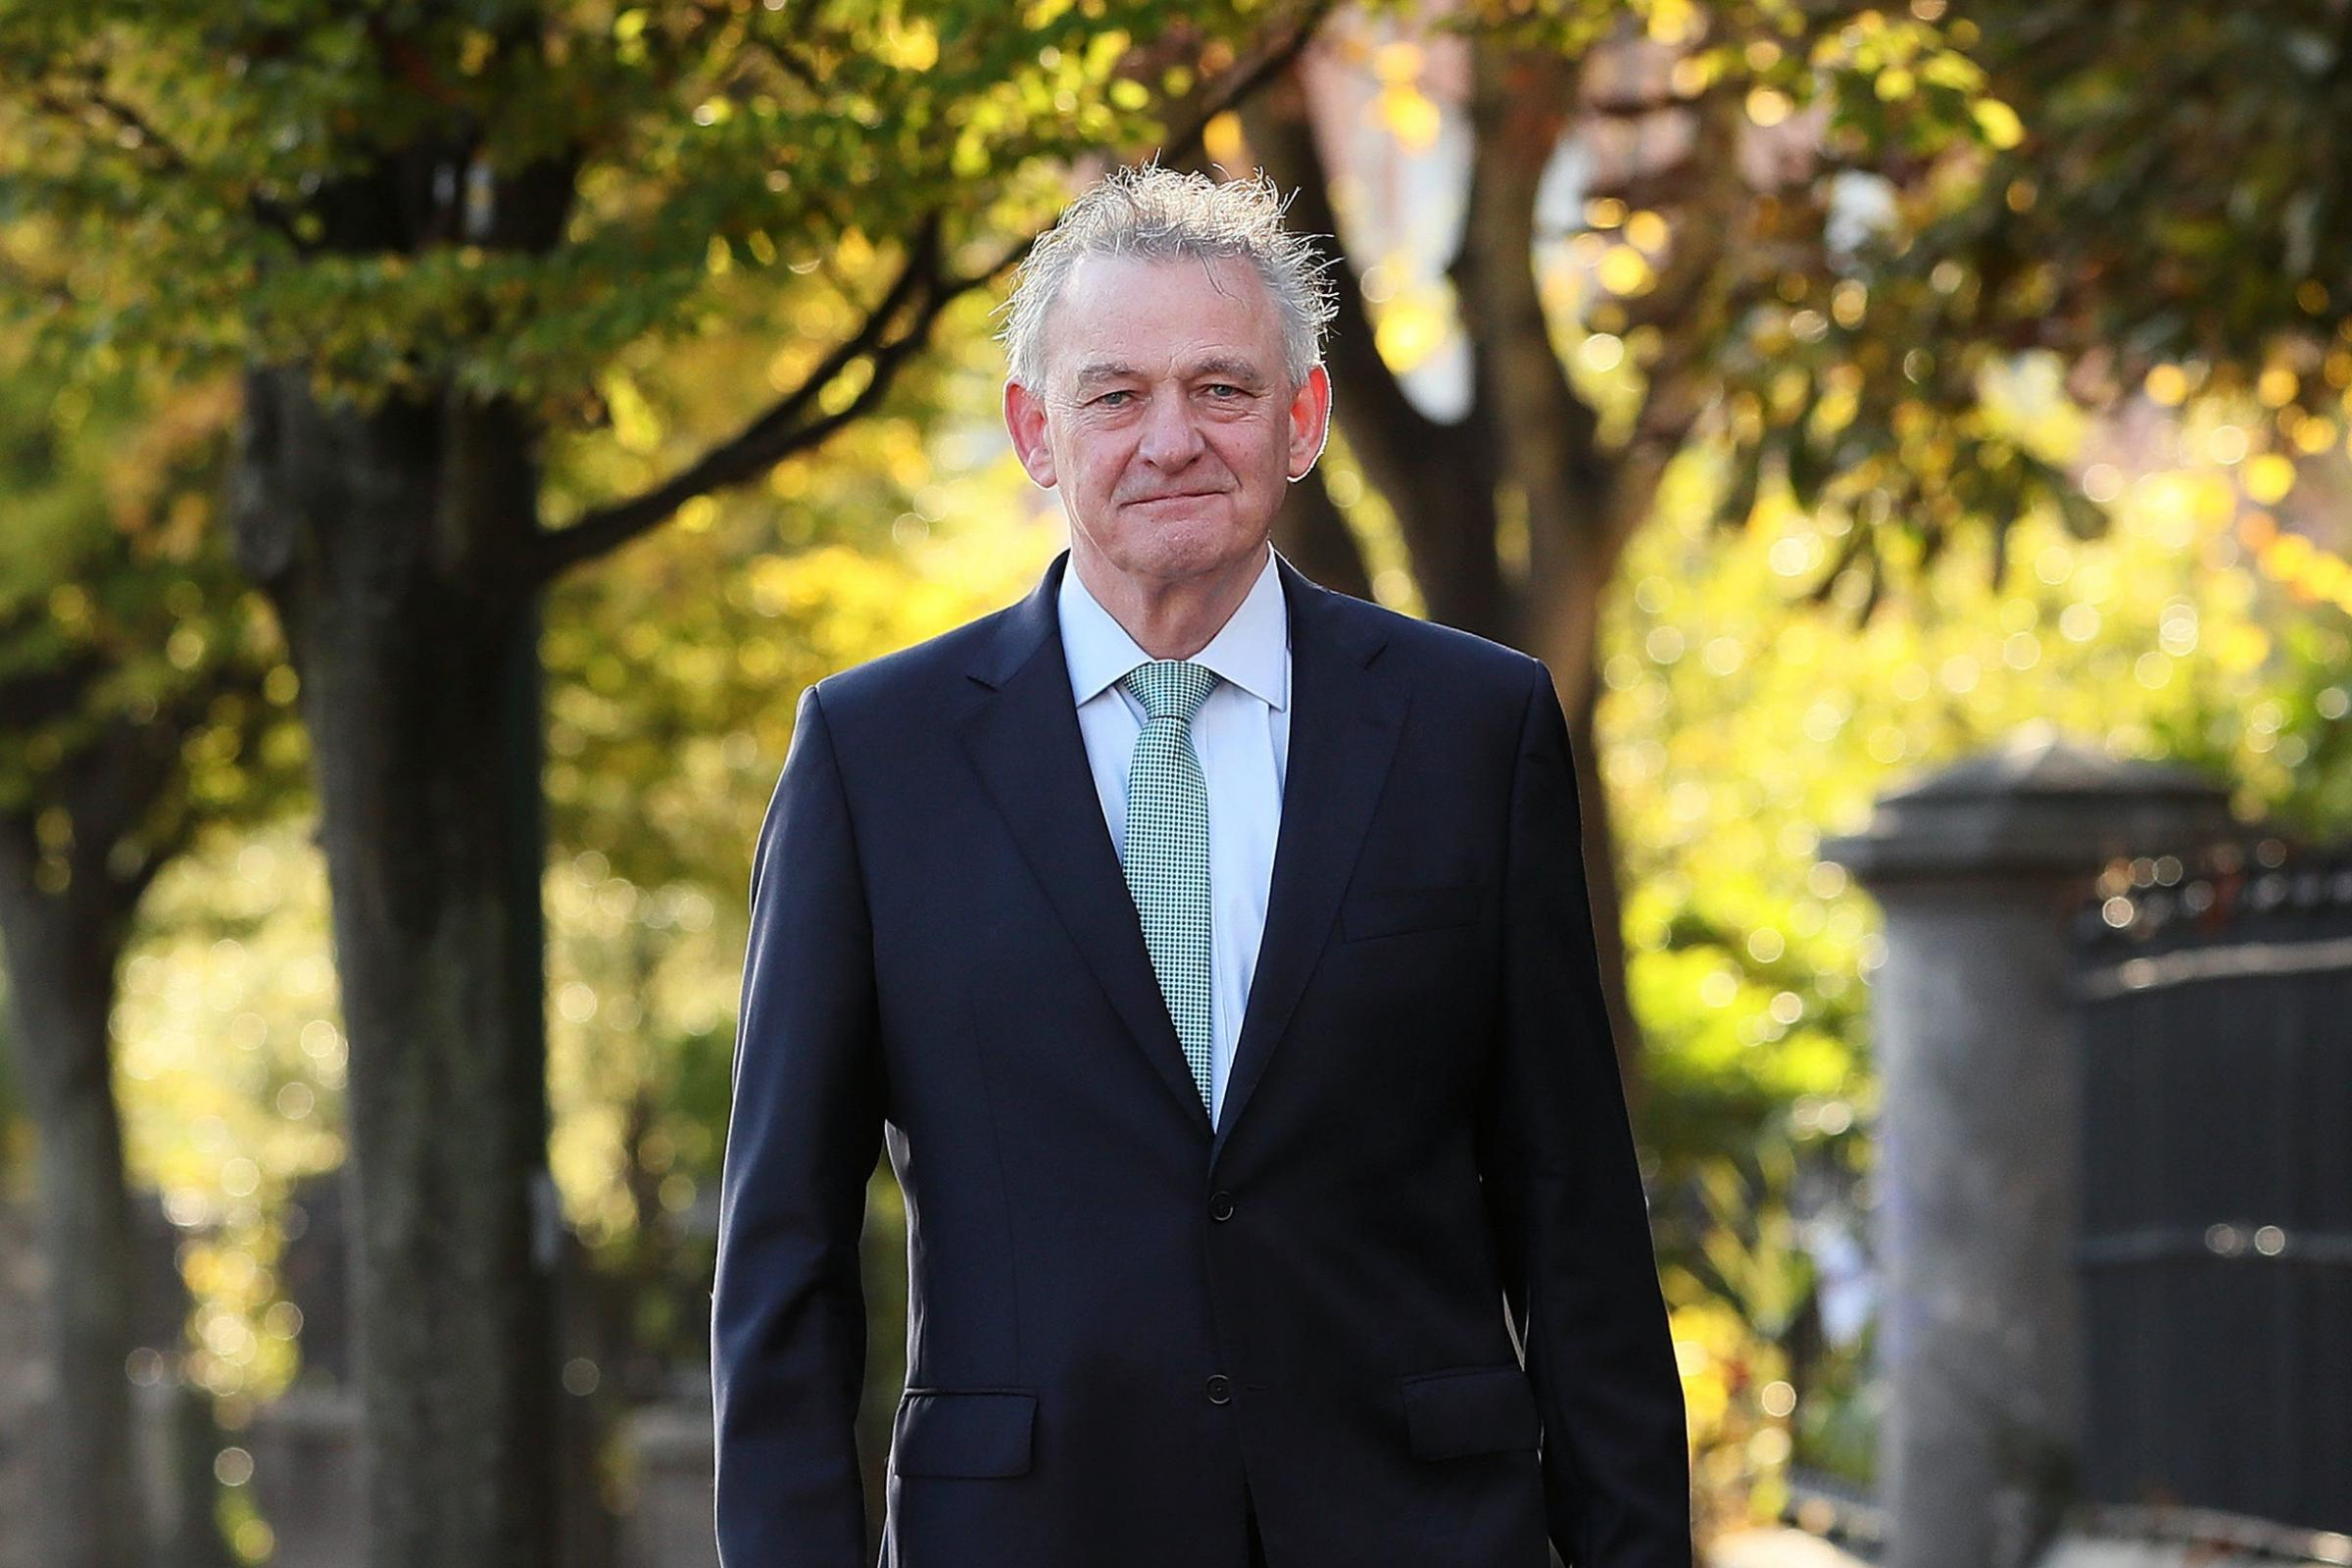 Peter Casey, who said he received 'thousands' of messages asking him not to pull out of the Irish presidential race